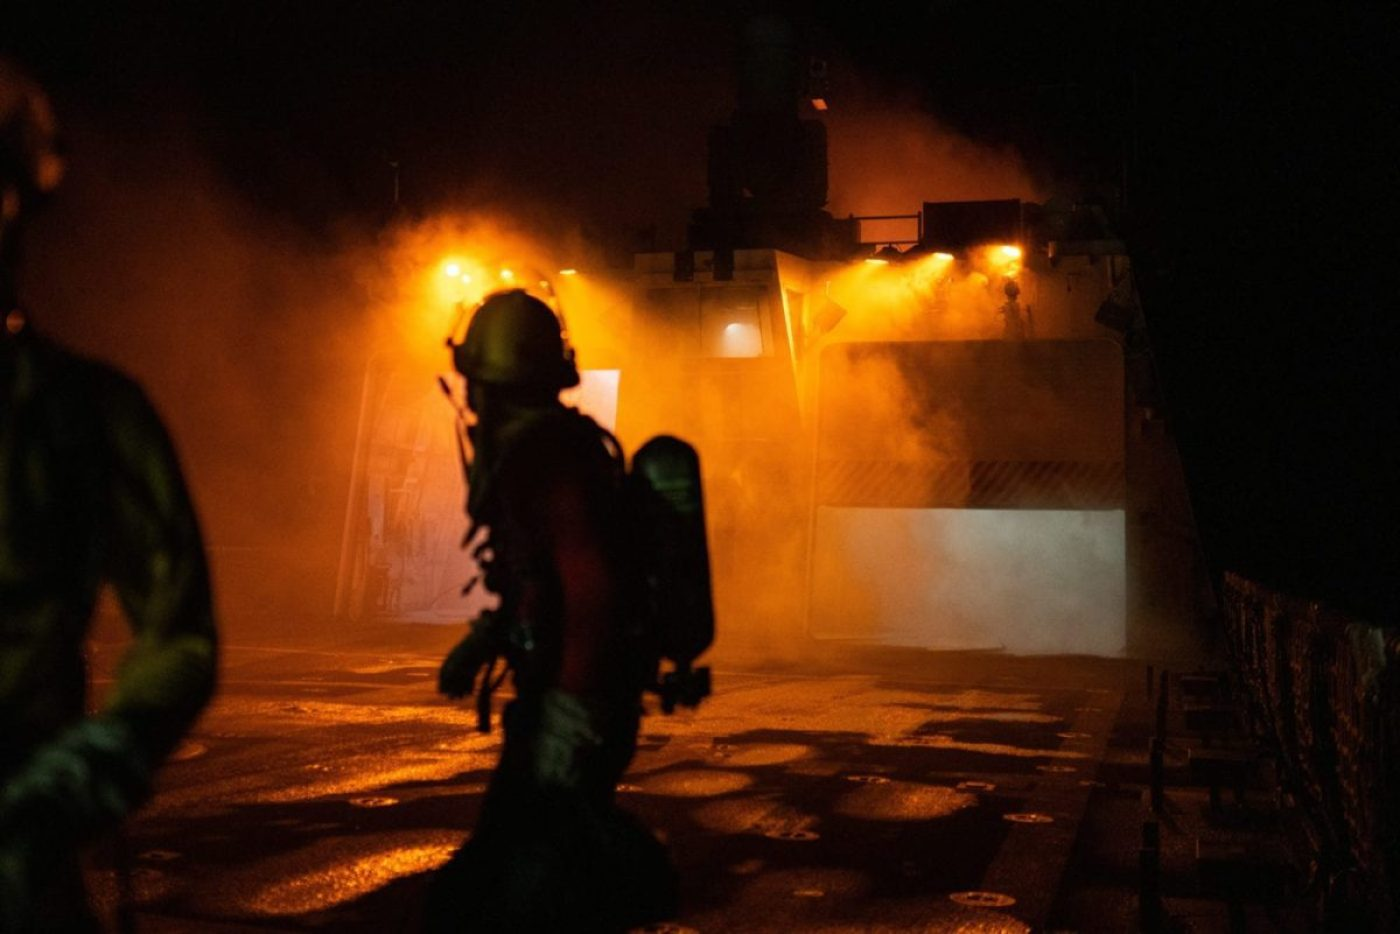 An investigator on board the Coast Guard Cutter Waesche, looks back towards the superstructure of the cutter in the Western Pacific Ocean, September 19th 2020. The Waesche's deployment to the region was in direct support of the U.S. Foreign Policy and National Security objectives in the region as outlined by the National Defense Strategy. (Coast Guard Photo by Petty Officer 3rd Class Aidan Cooney)